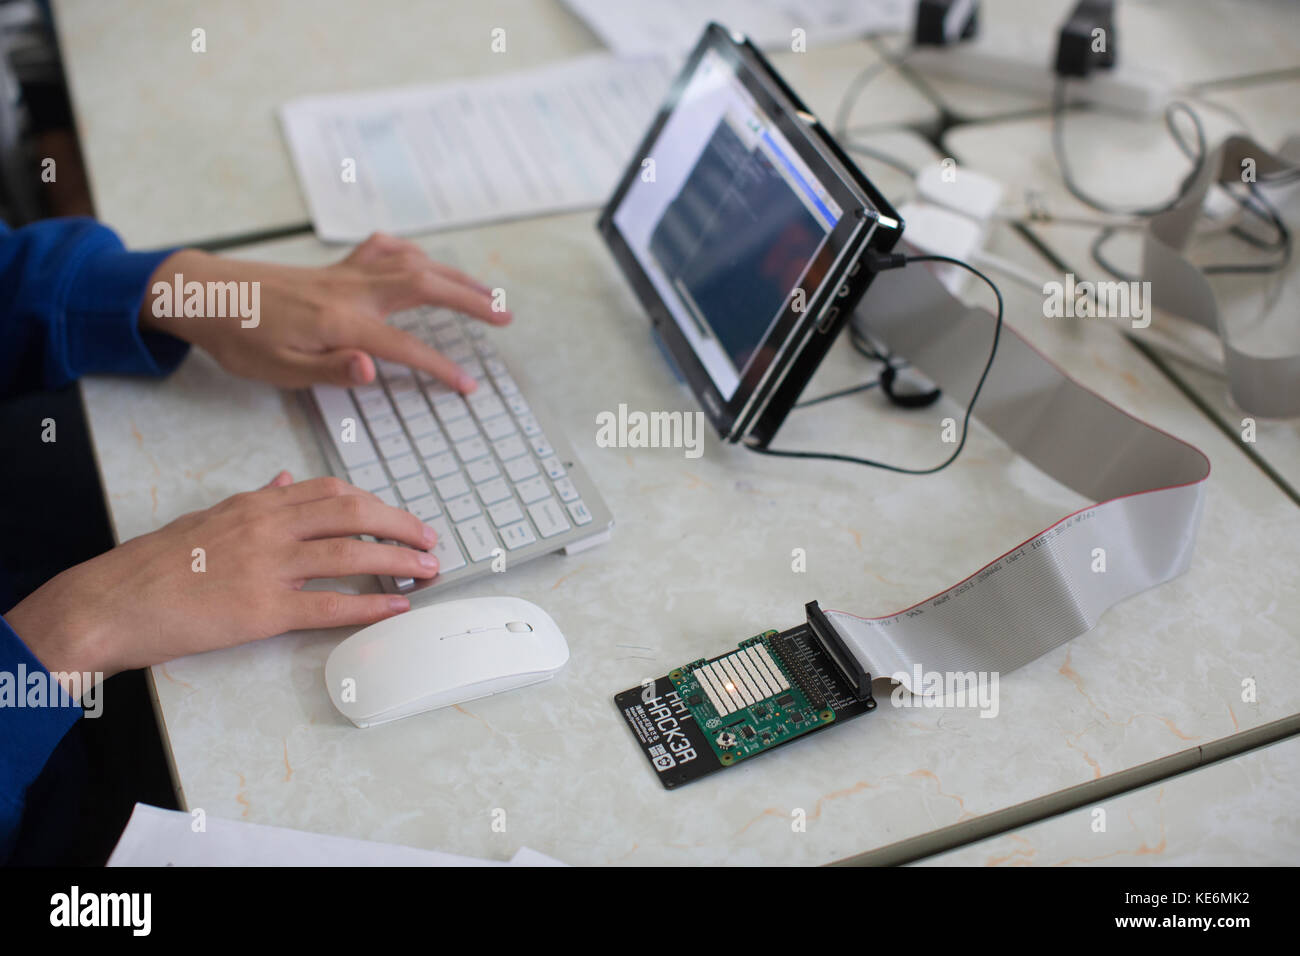 People attending the Cambridge Raspberry Jam, UK-based meet-up for anyone interested in the Raspberry Pi computer, - Stock Image